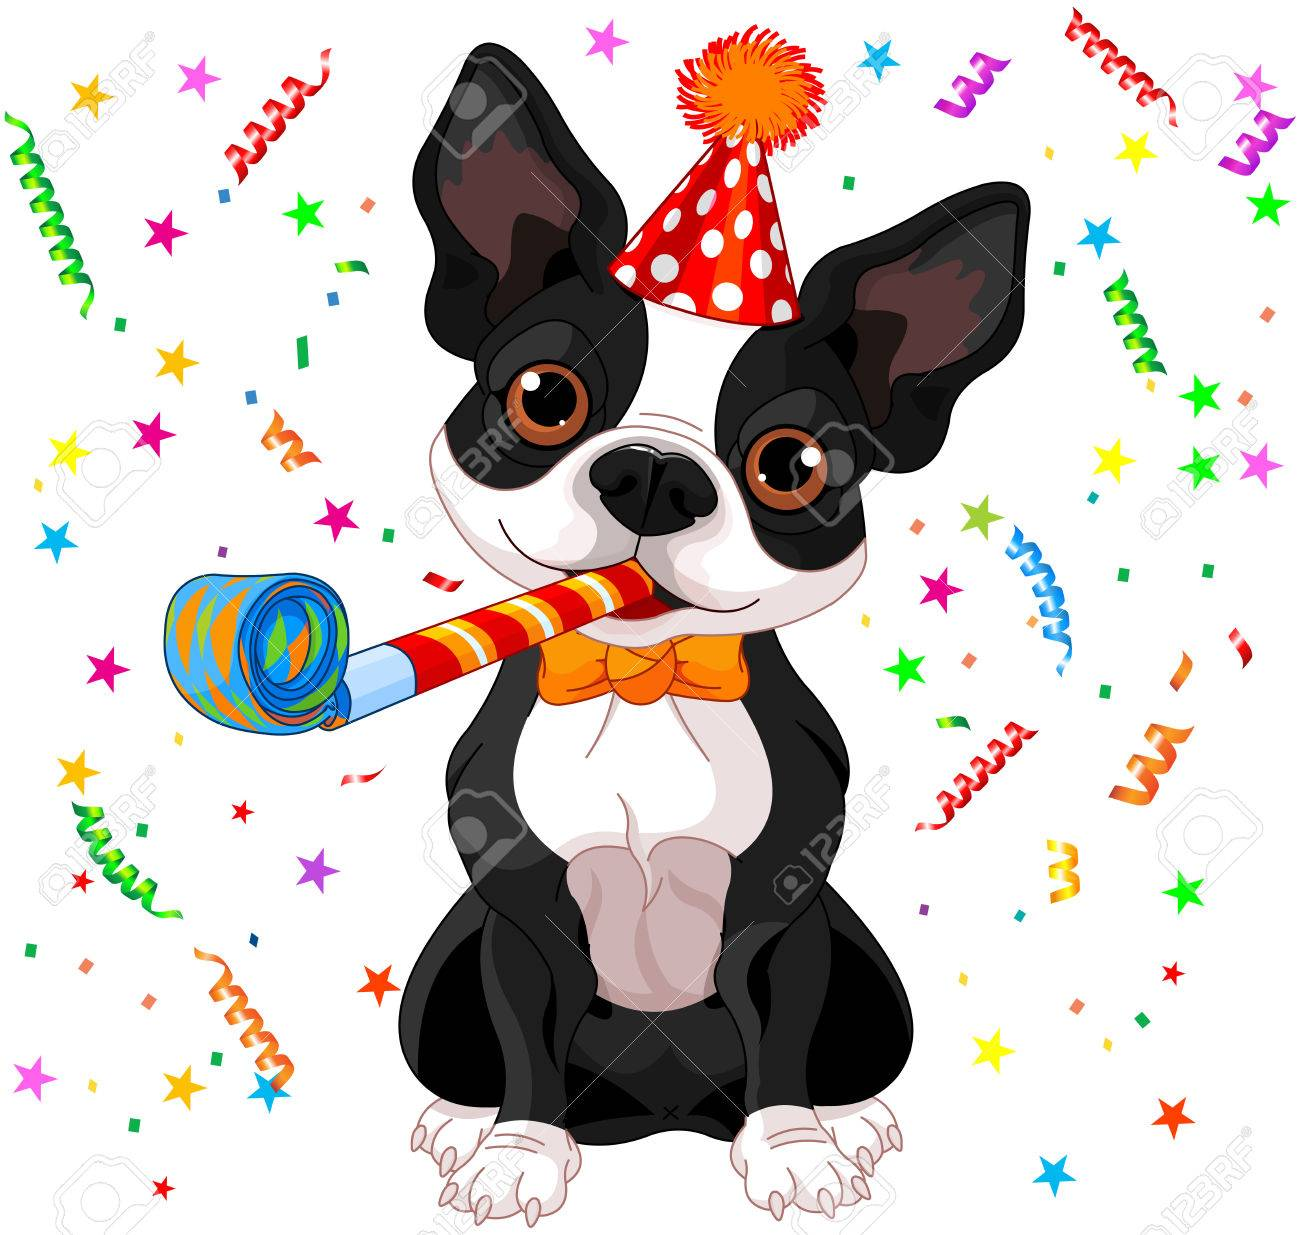 Réactivité: aboie sur les gens (connus ou non) 35588778-illustration-of-cute-boston-terrier-celebrating